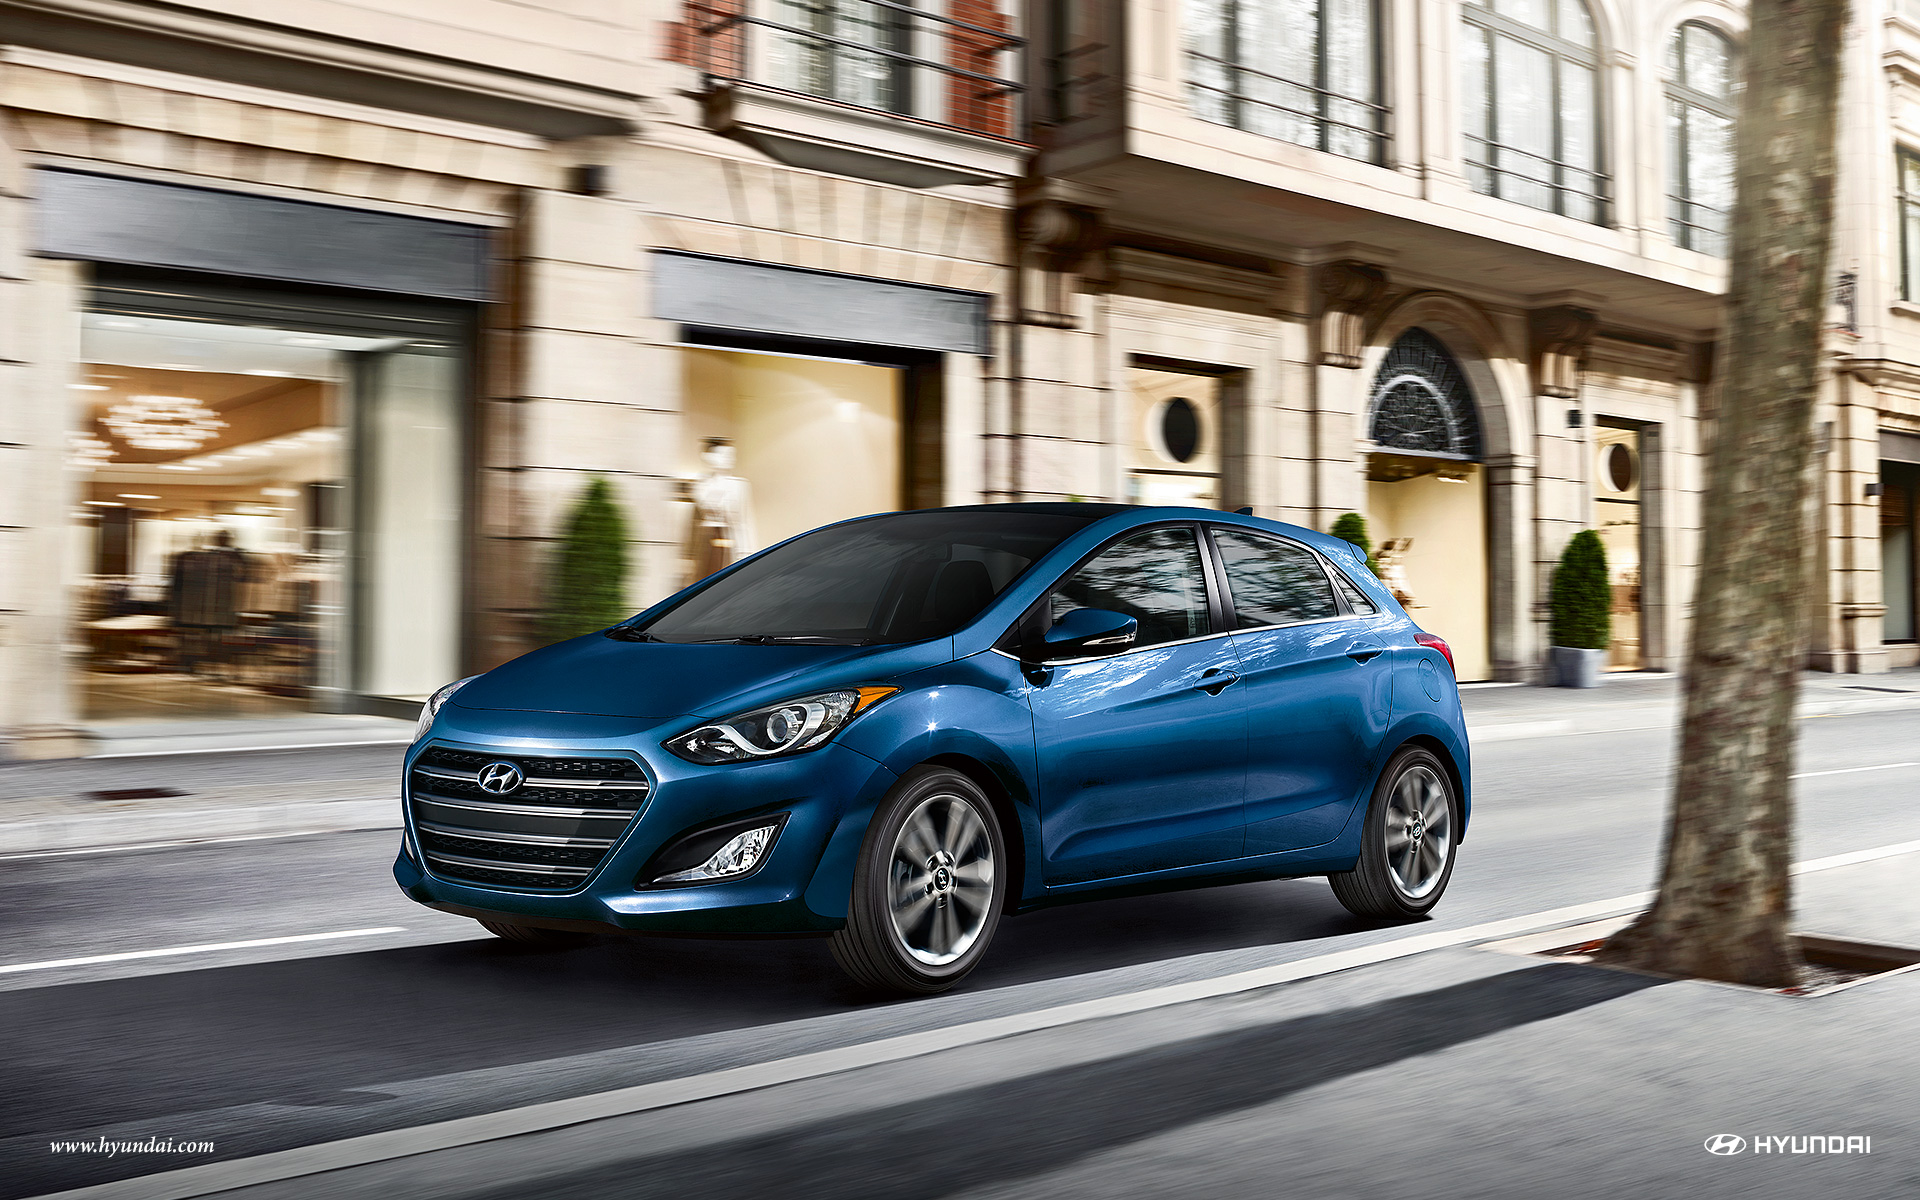 Do A Grand Tour In Hyundaiu0027s Elantra GT (Lease From $116/Month, $0